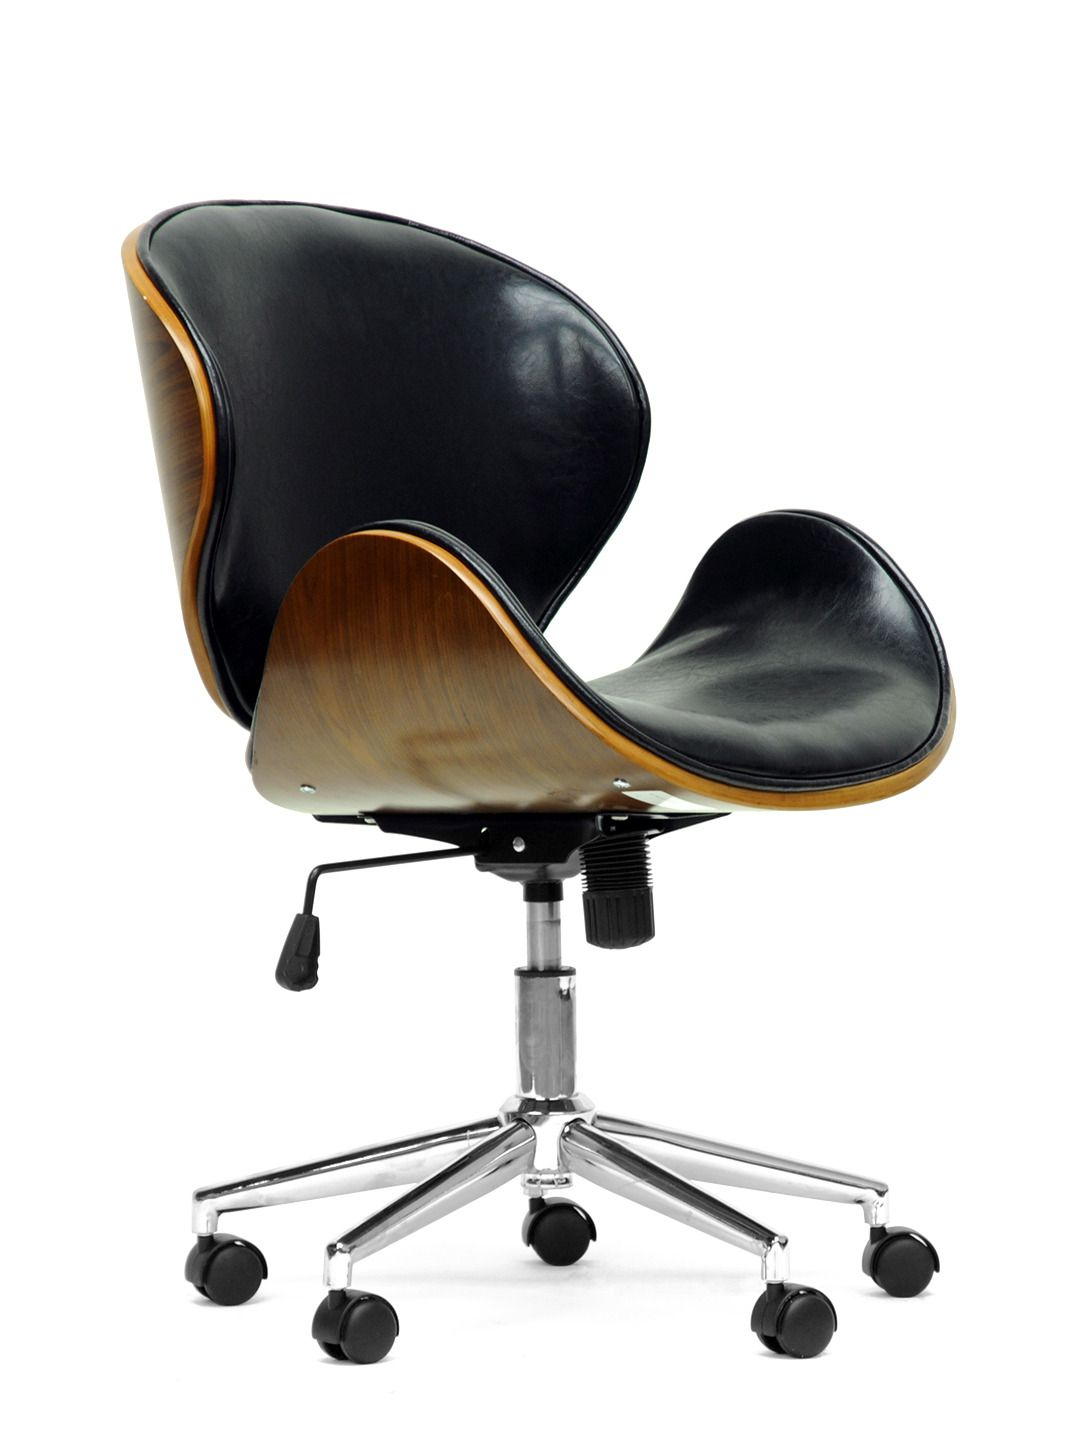 Office Chair Designer Intended Bruce Office Chair By Design Studios At Gilt Couch Potato